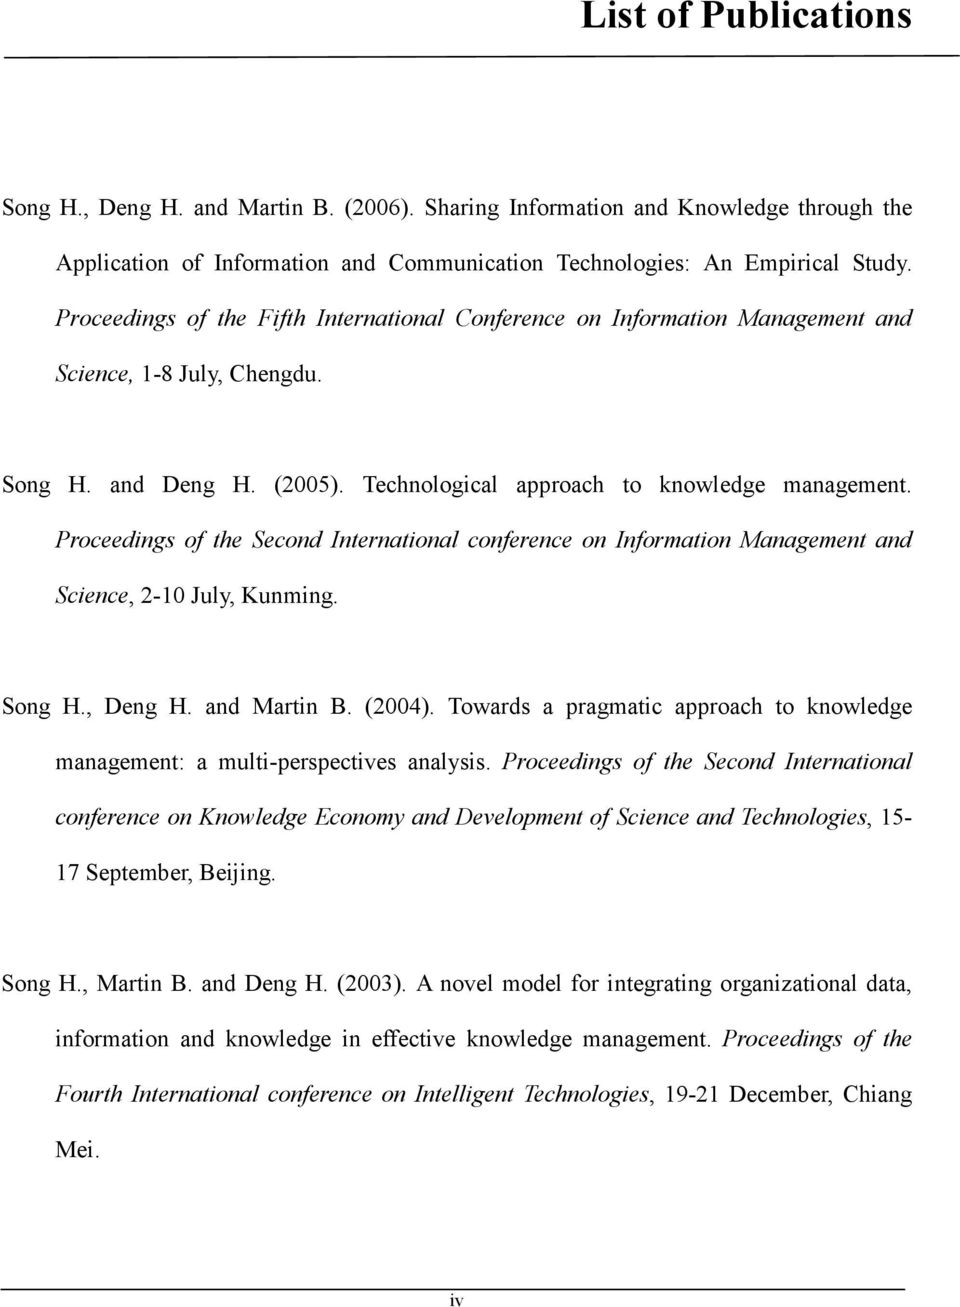 Proceedings of the Second International conference on Information Management and Science, 2-10 July, Kunming. Song H., Deng H. and Martin B. (2004).